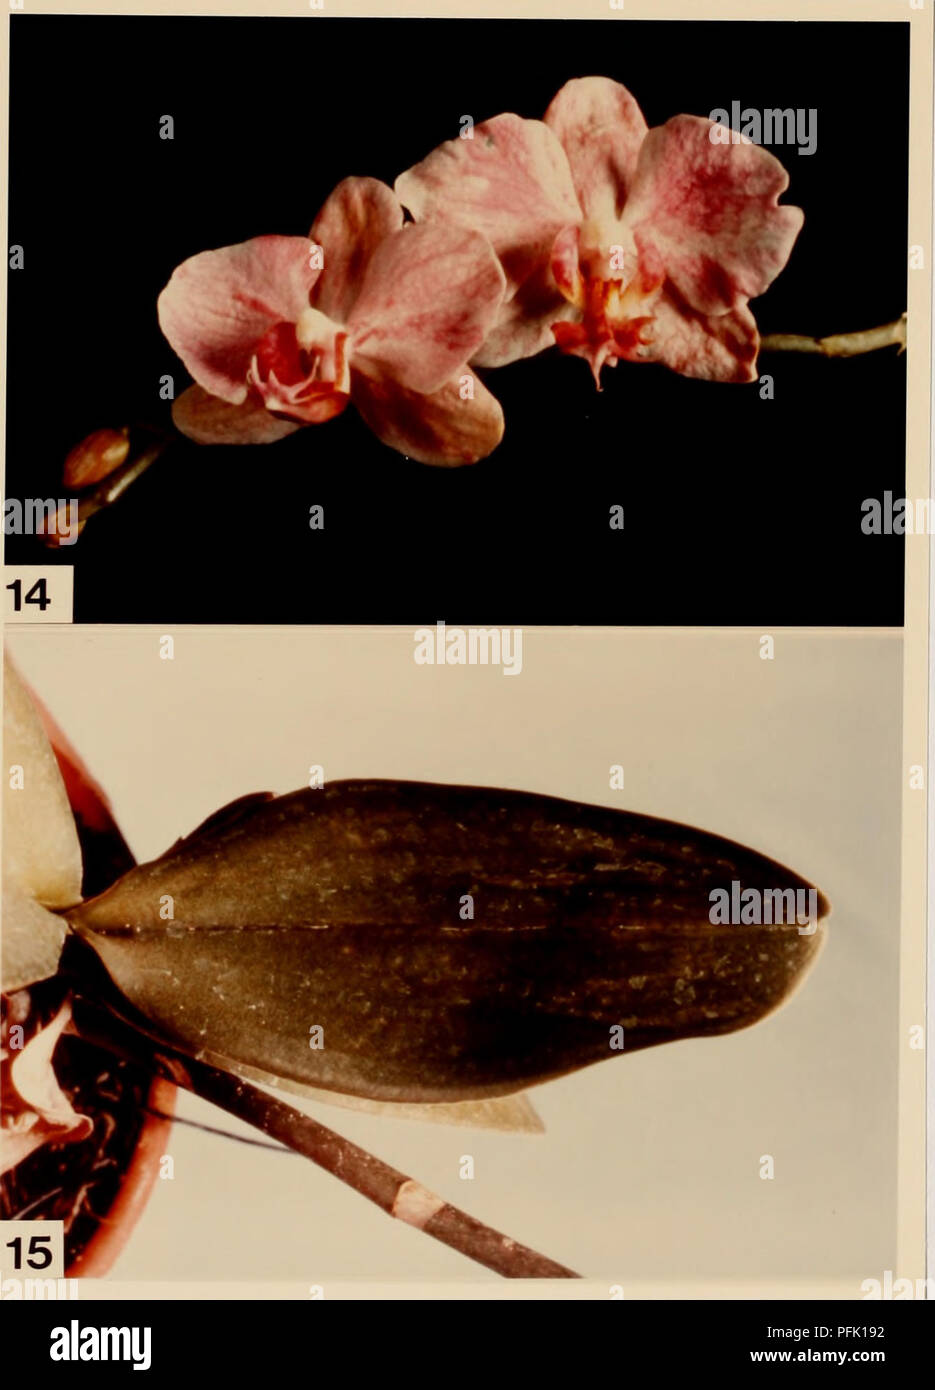 . Cytological methods for the detection, identification, and characterization of orchid viruses and their inclusion bodies. Orchids; Virus diseases of plants. -19-. Figure 14. Color breaking of Phalaenopsis flowers caused by CMV infection. Figure 15. Chlorotic Phalaenopsis leaf infected with CMV.. Please note that these images are extracted from scanned page images that may have been digitally enhanced for readability - coloration and appearance of these illustrations may not perfectly resemble the original work.. Ko, Nan-Jing. - Stock Image